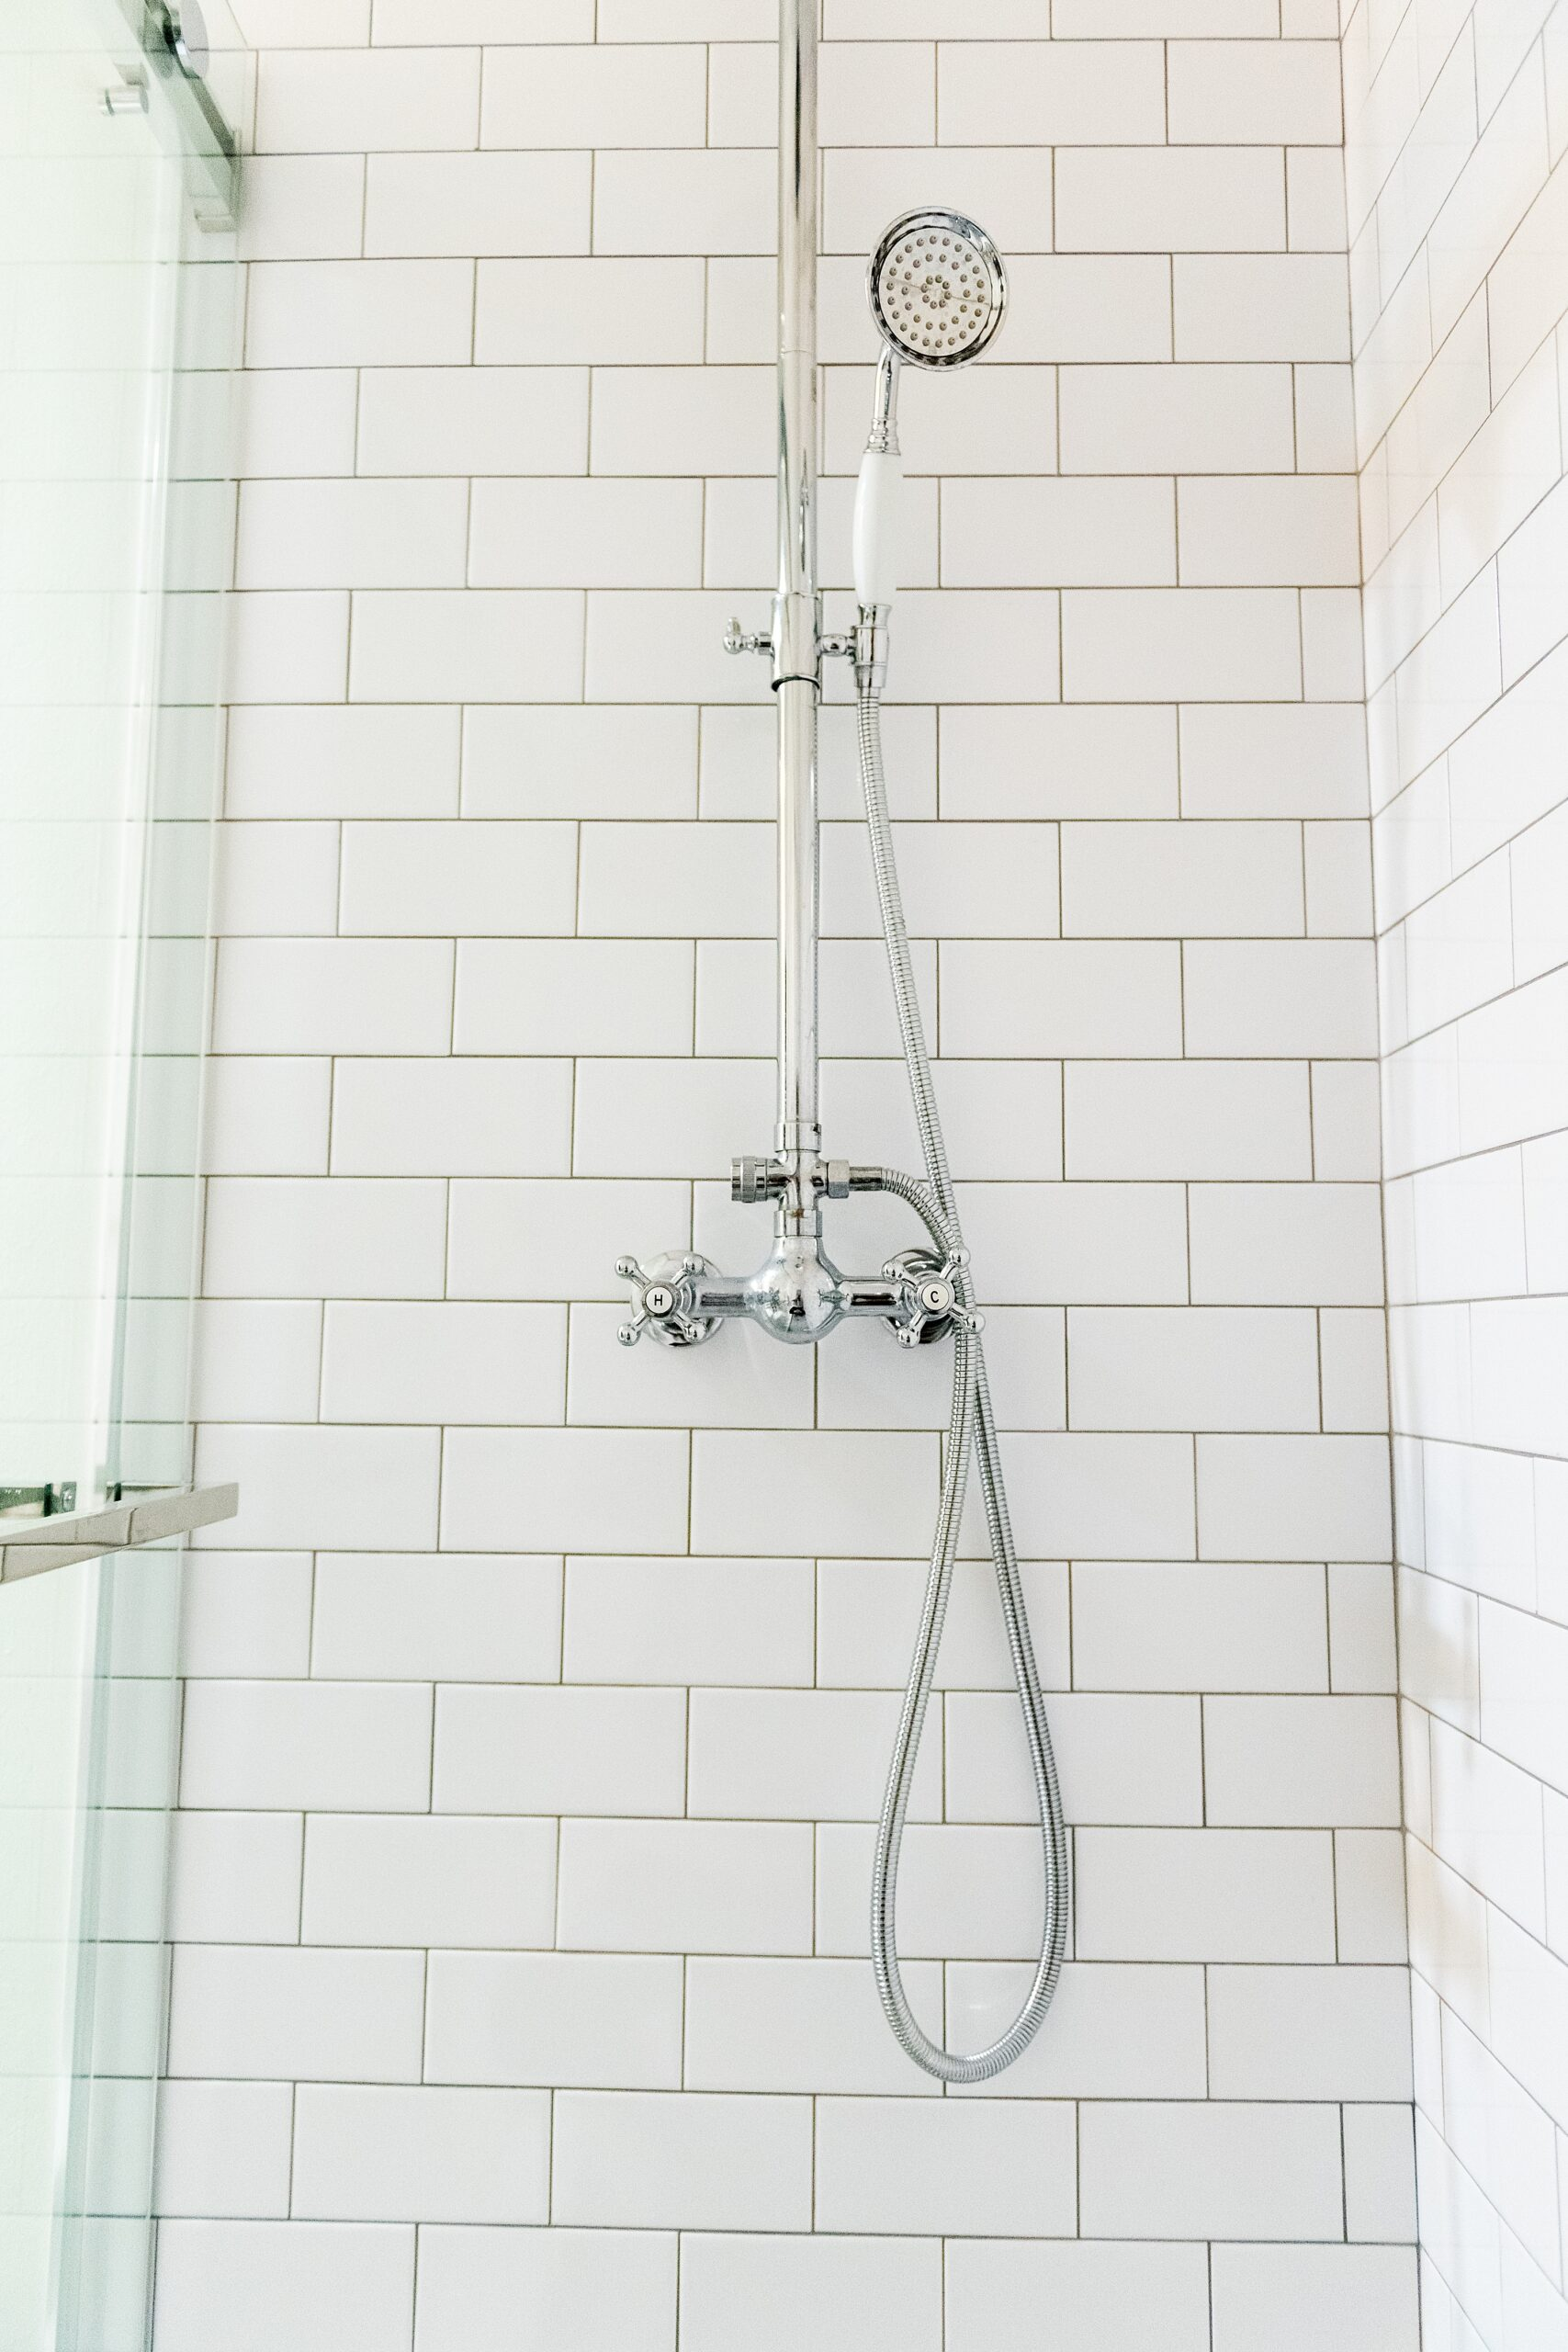 Girls Bathroom by popular Houston life and style blog, Fancy Ashley: image of a bathroom with a walk in shower that has white subway tile and hand held shower head.